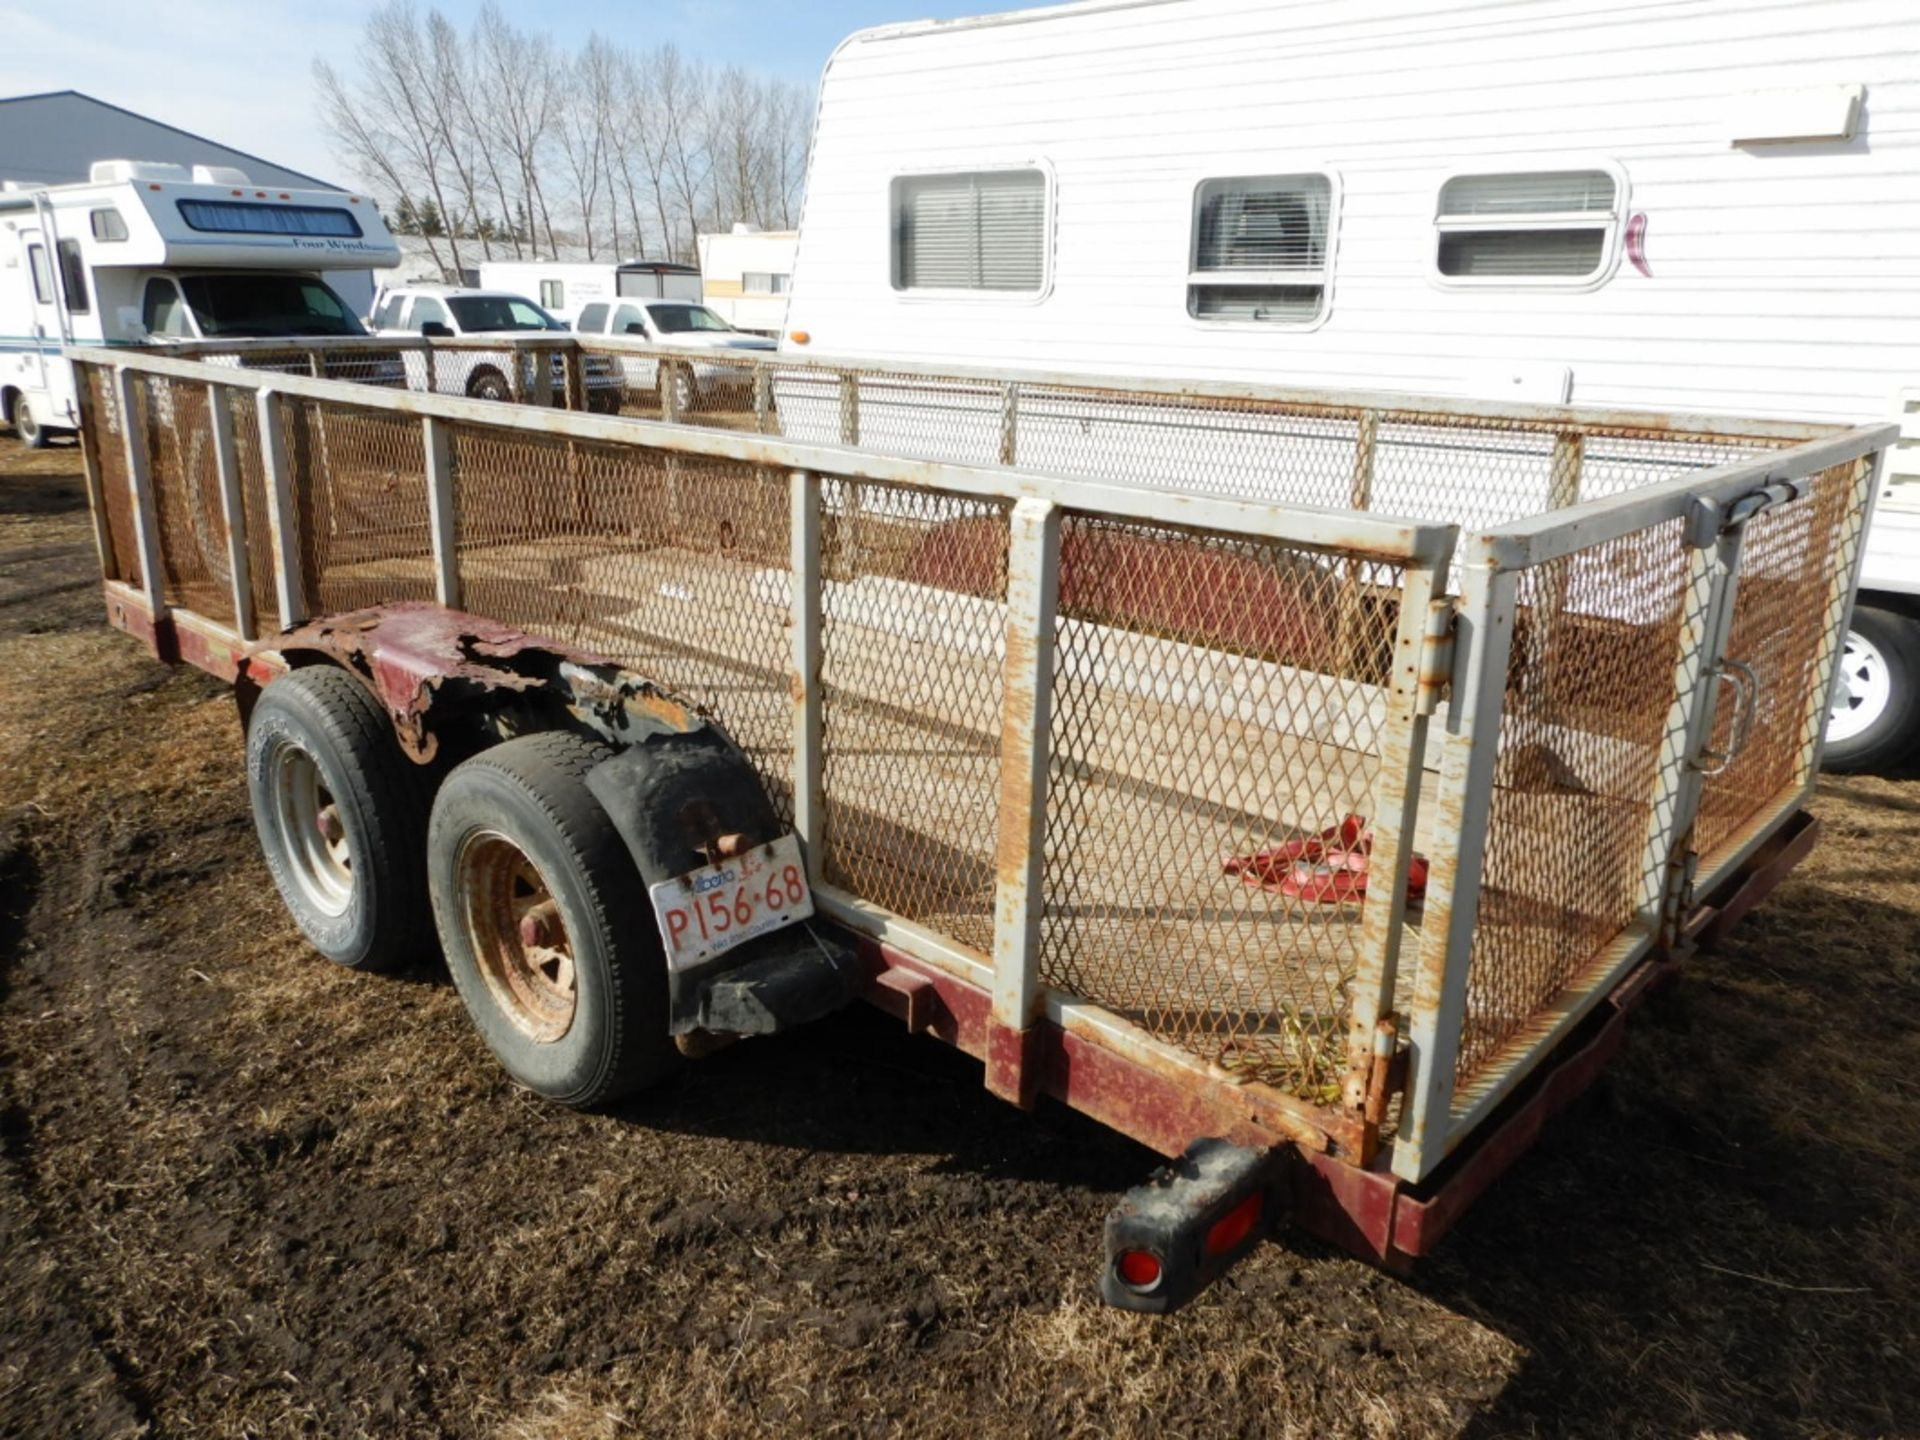 16 FT T/A CAR/EQUIPMENT TRAILER W/REMOVABLE MESH STEEL RACKS NO VIN, NO YEAR, NO MAKE & MODEL - Image 4 of 6